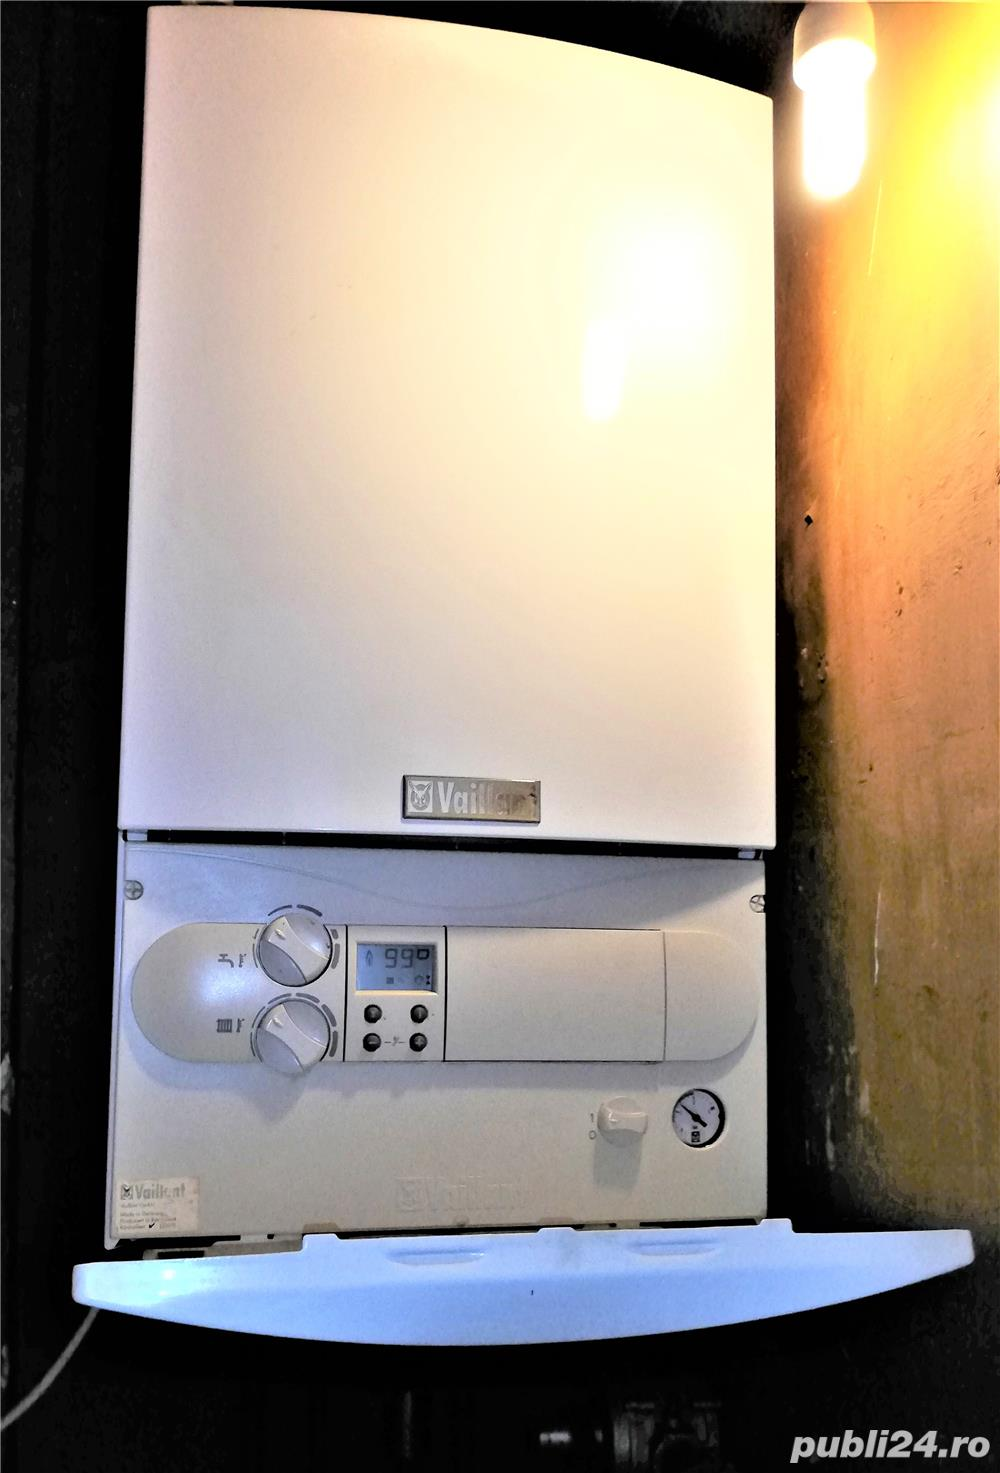 Vaillant VUI 282 – 7 R2, 24 Kw second hand